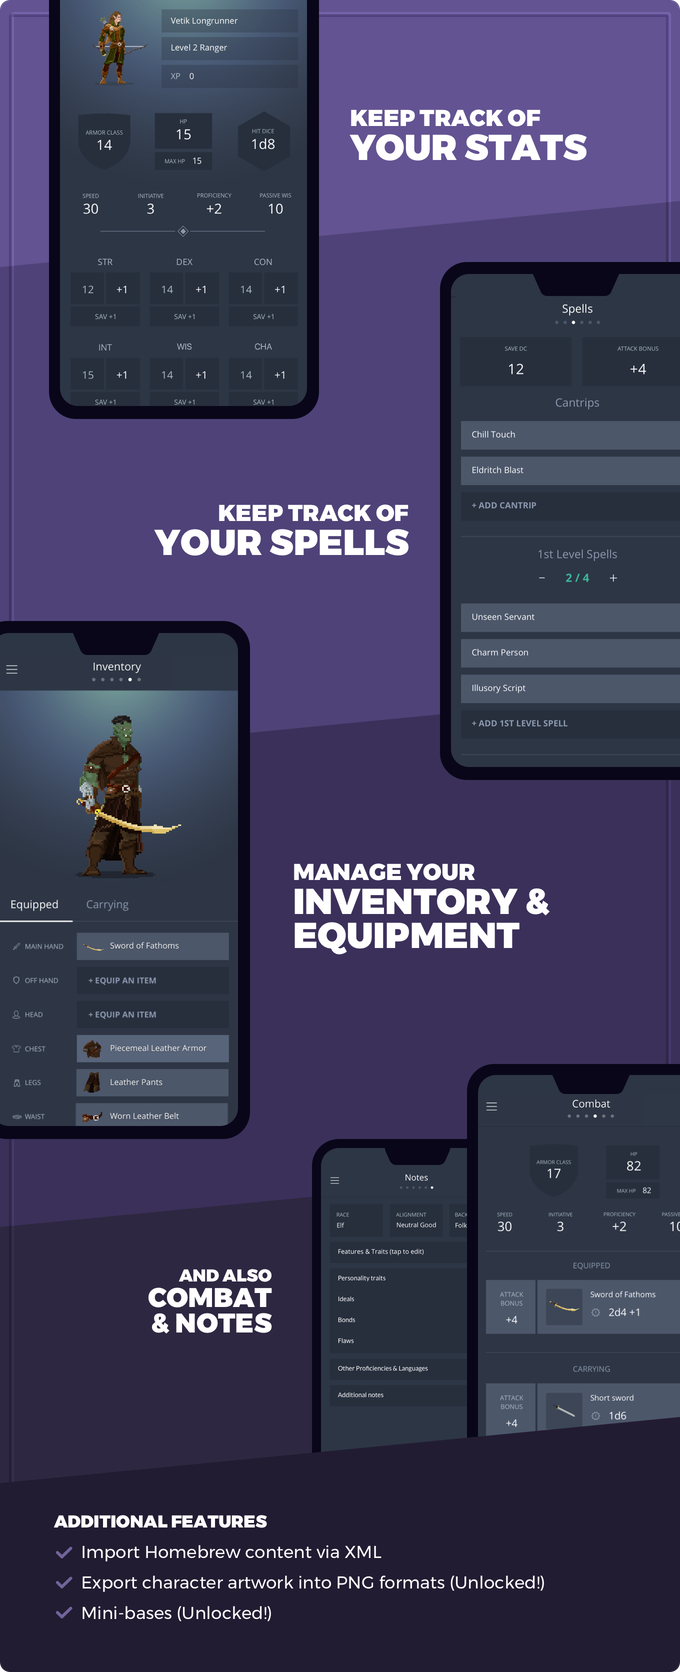 Reroll: Customize your DnD characters in Pixel Art by Team Reroll